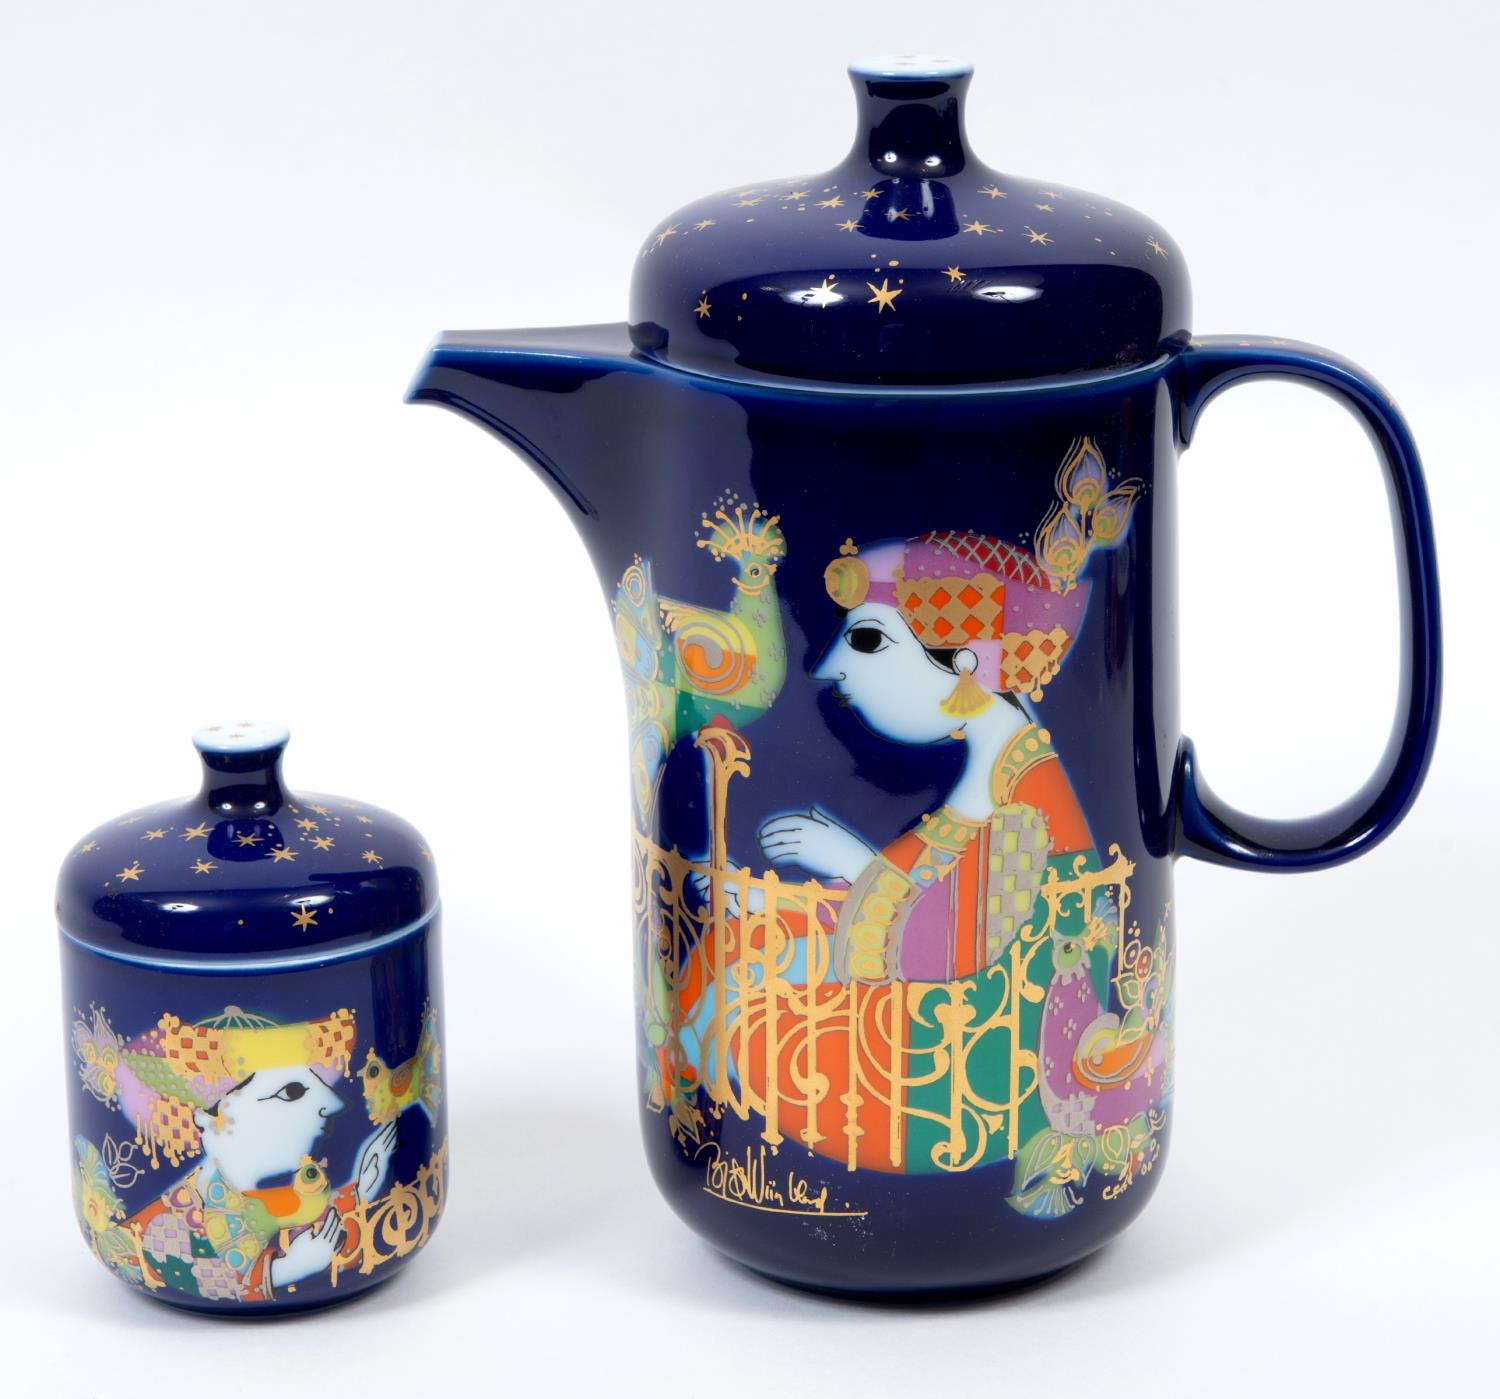 Lot 4 - A Rosenthal 1001 Nights pattern coffee set, designed by Bjorn Wiinblad, comprising a coffee pot